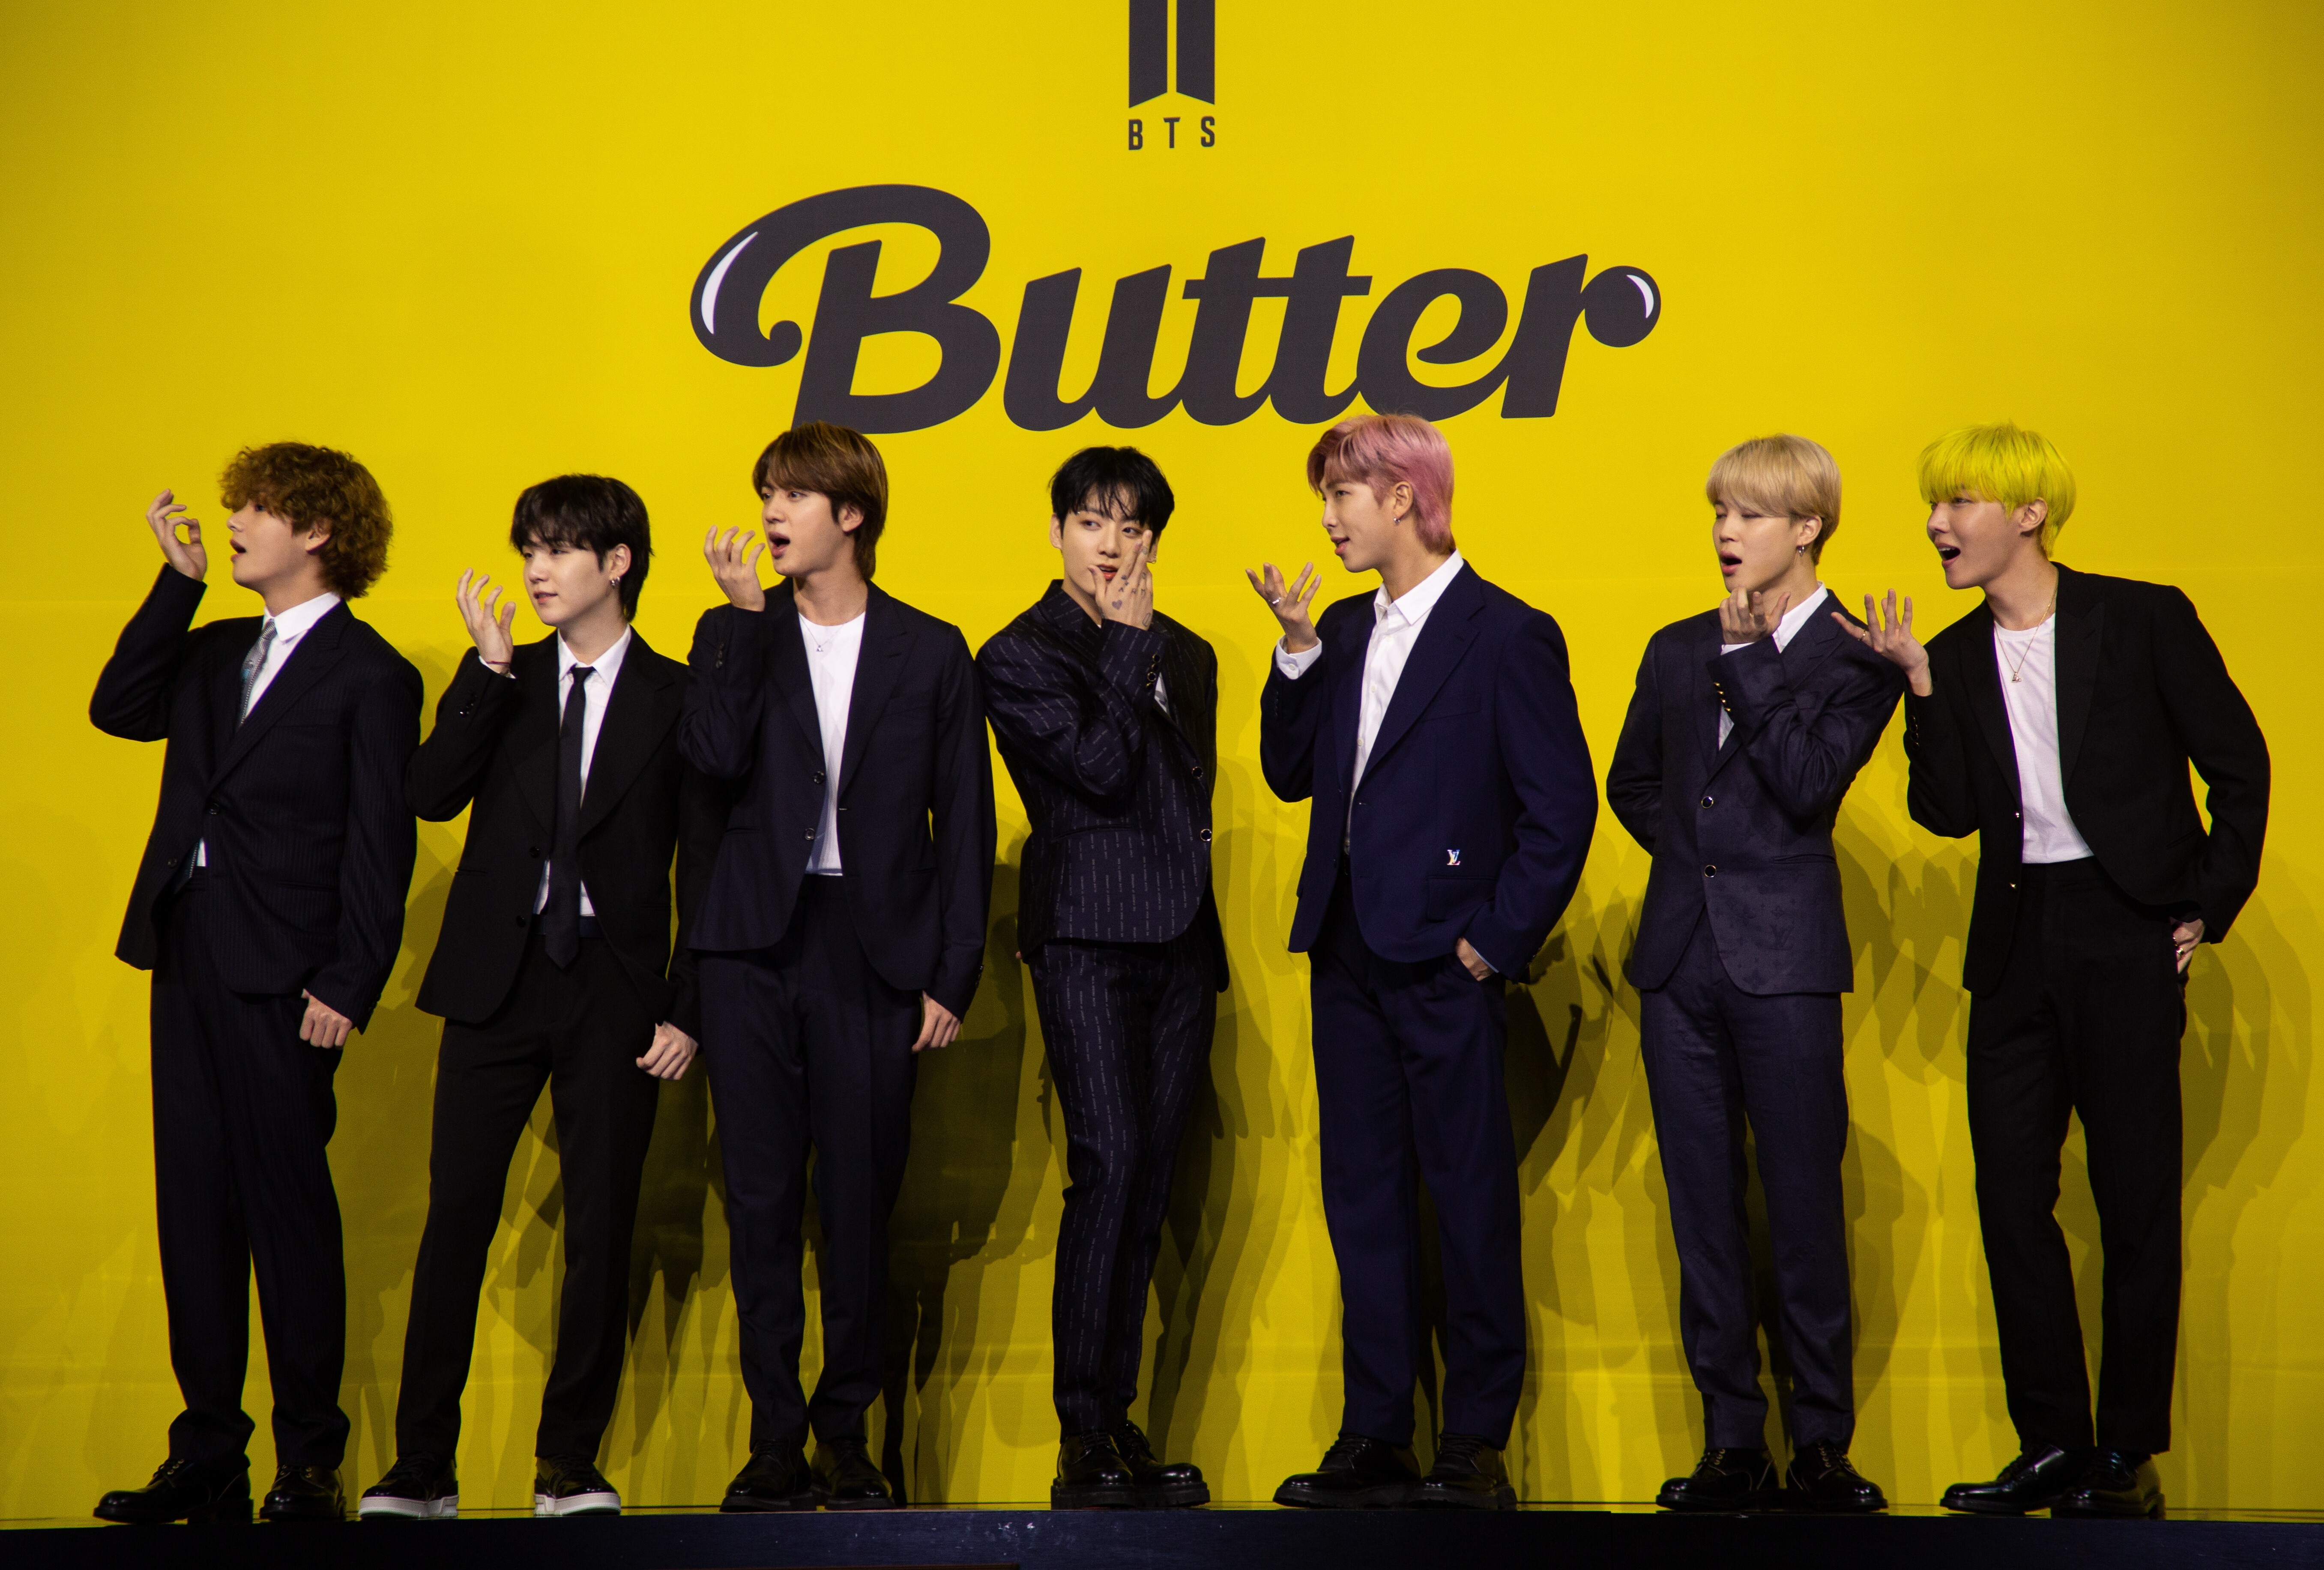 22 BTS' summer hit 'Butter' melts records on YouTube and Spotify   YP ...